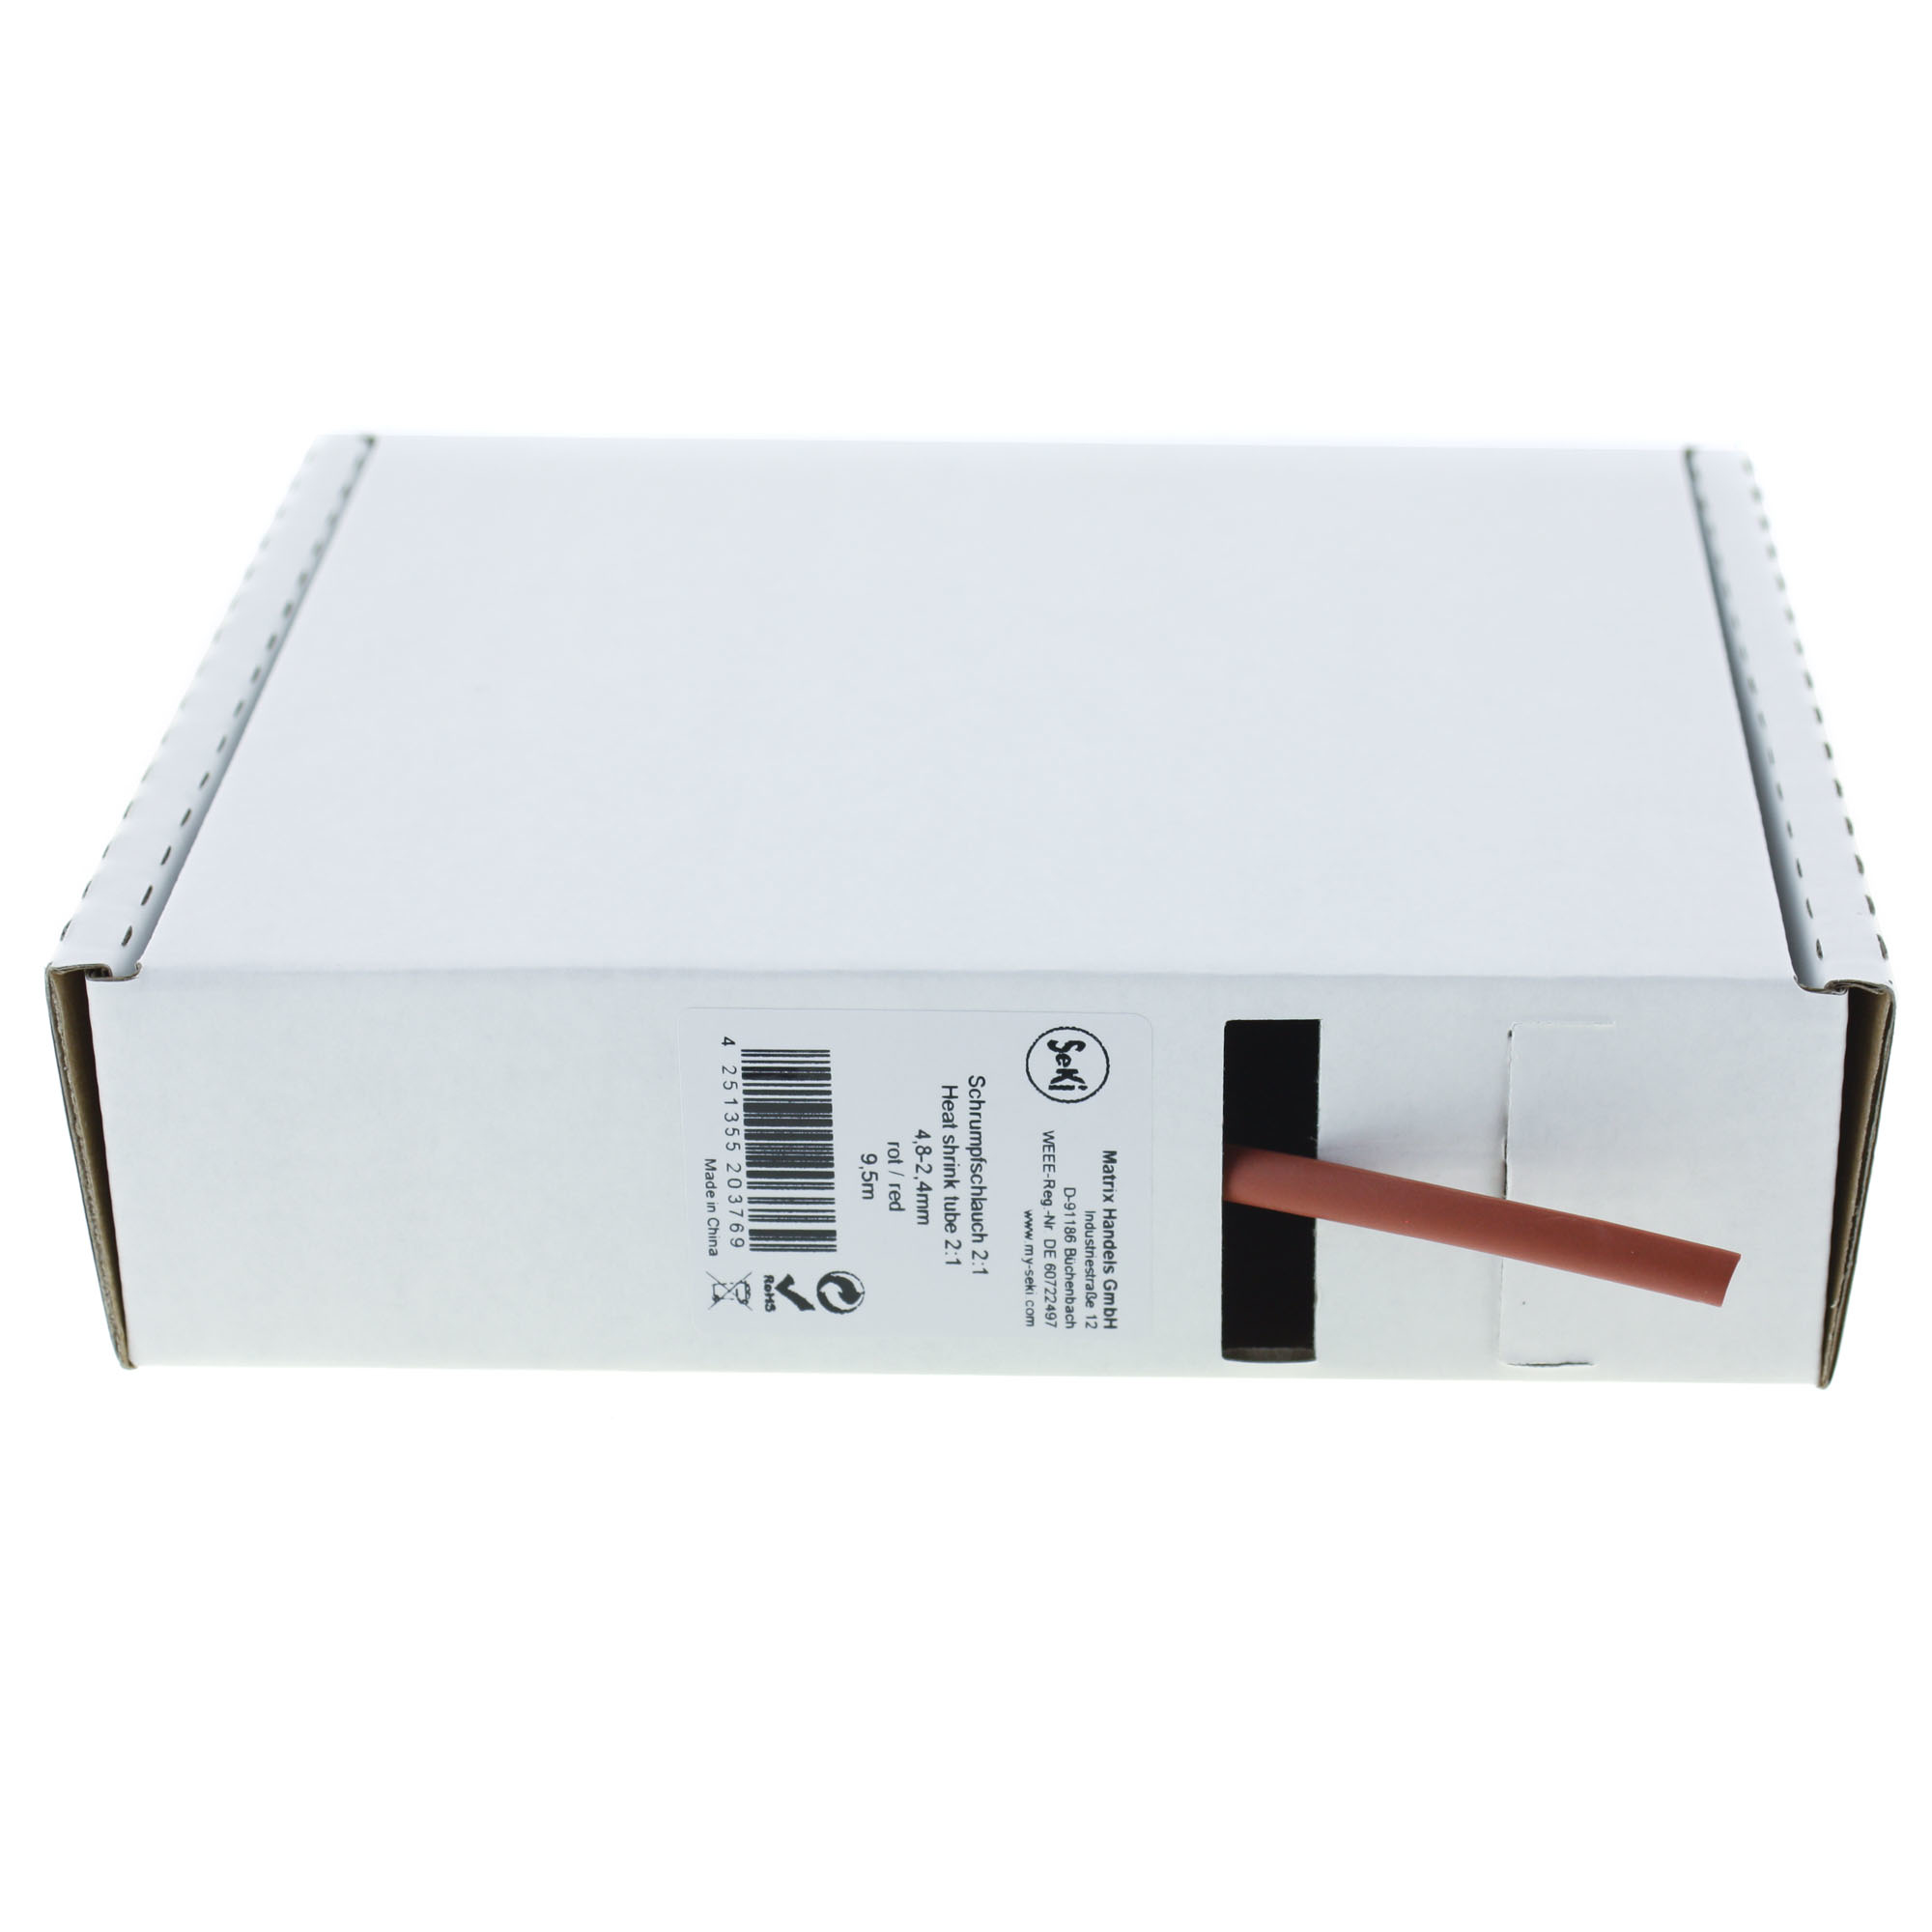 Heat shrink tube 2:1 / 4,8-2,4mm, 9,5m, red